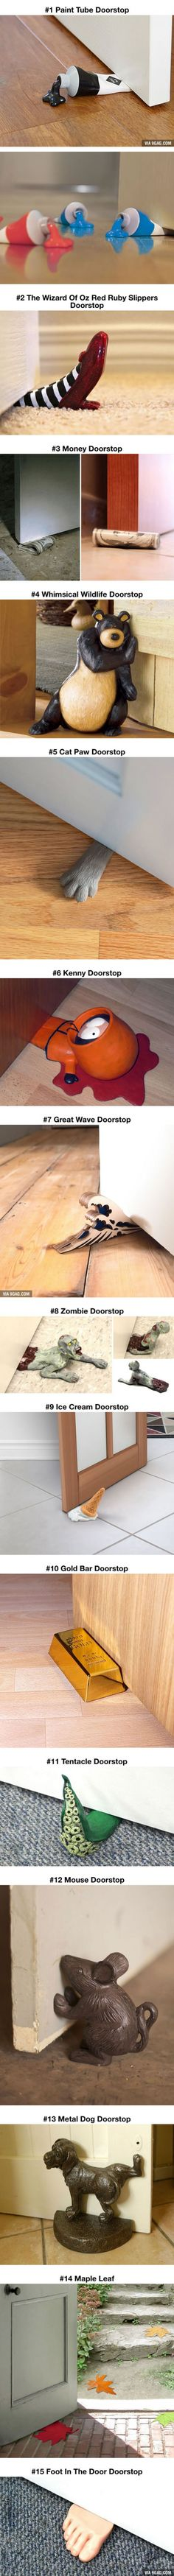 15 Fun Doorstops. You've Never Wanted A Doorstop This Much!